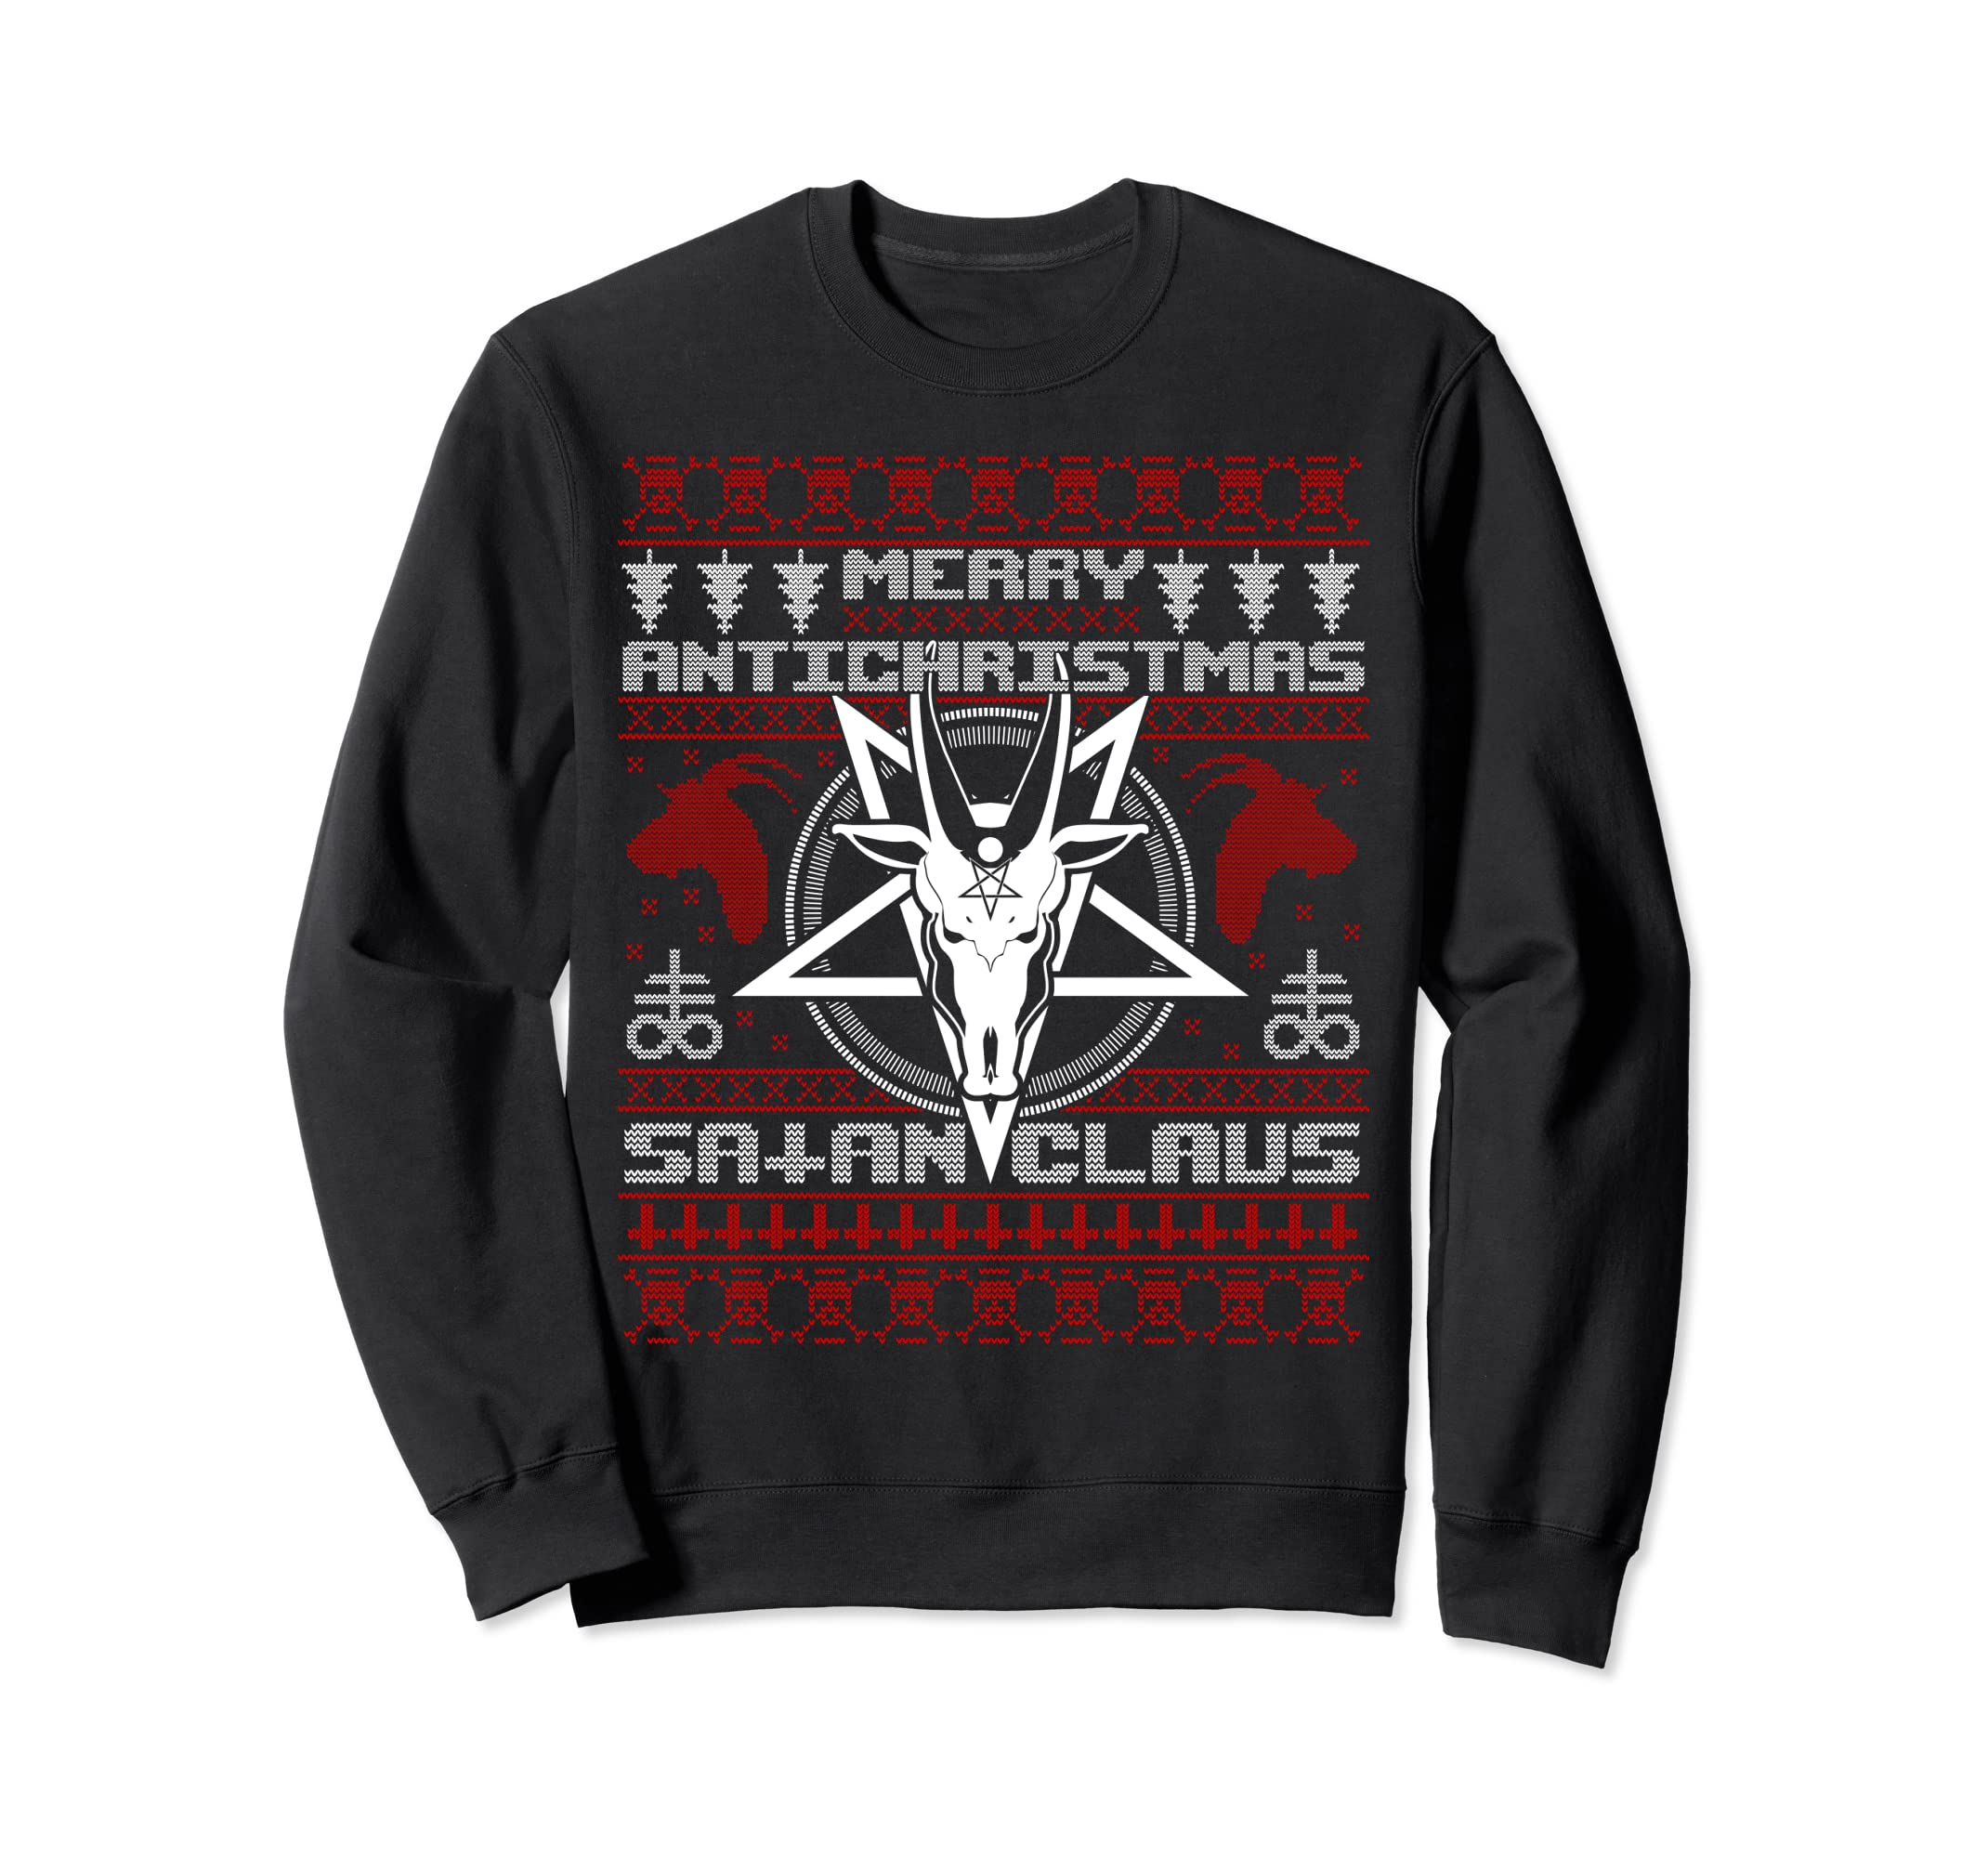 Satanic Christmas Sweater.Merry Antichristmas Satan Claus Satanic Ugly Sweater